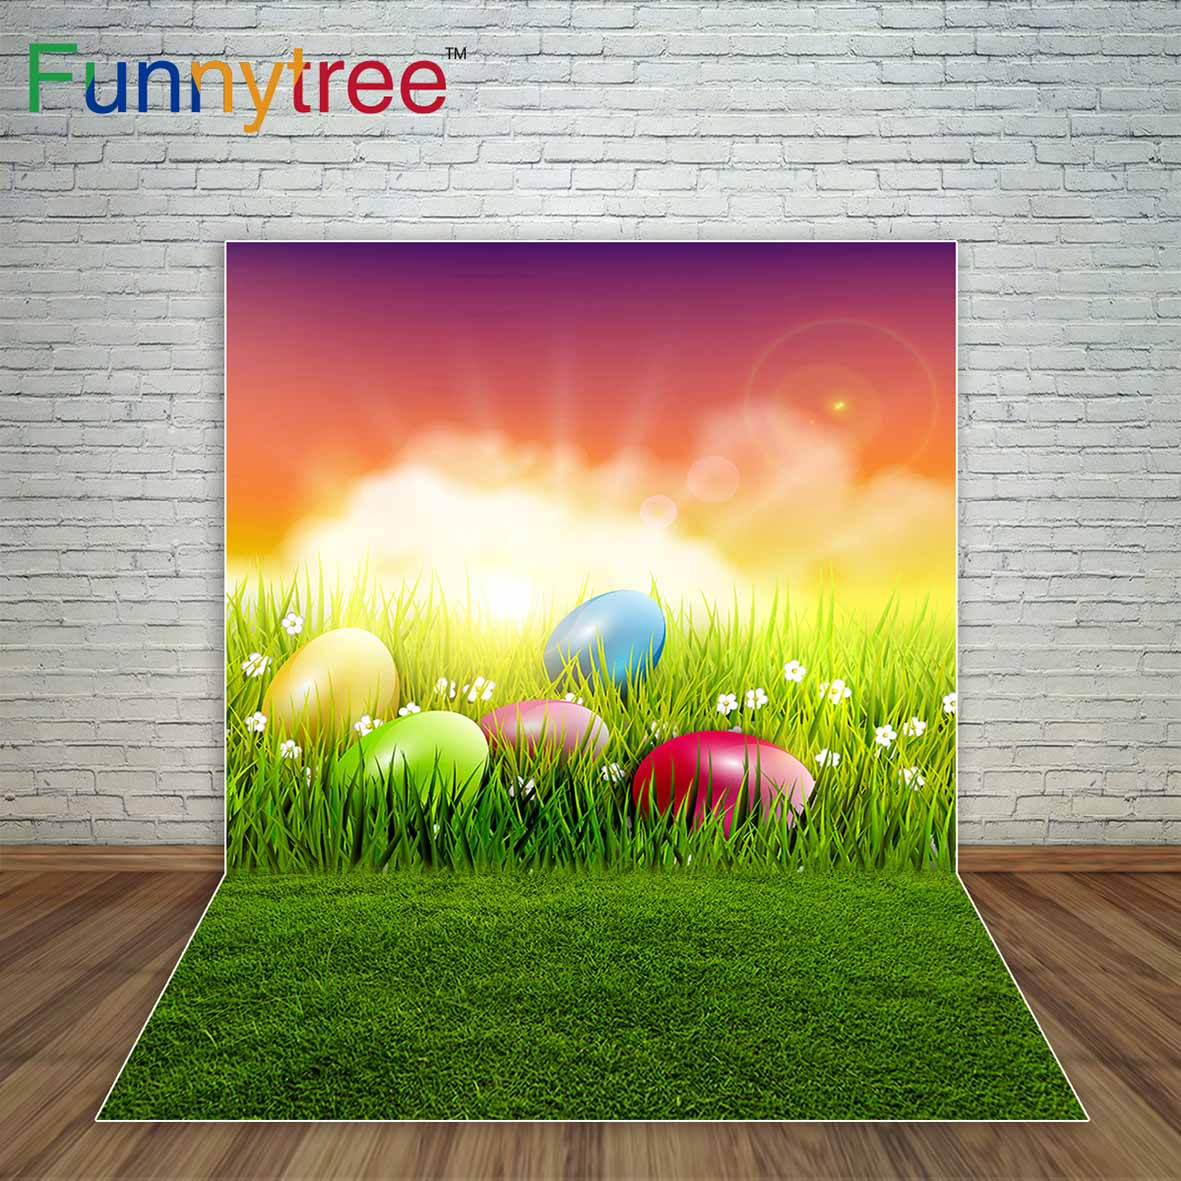 Easter Meadow Flowers Sunrise Spring Background Eggs Green Grassland Kid Photography photography backdrops a photo new arrival background fundo meadow flowers gift 300cm 200cm about 10ft 6 5ft width backgrounds lk 3858